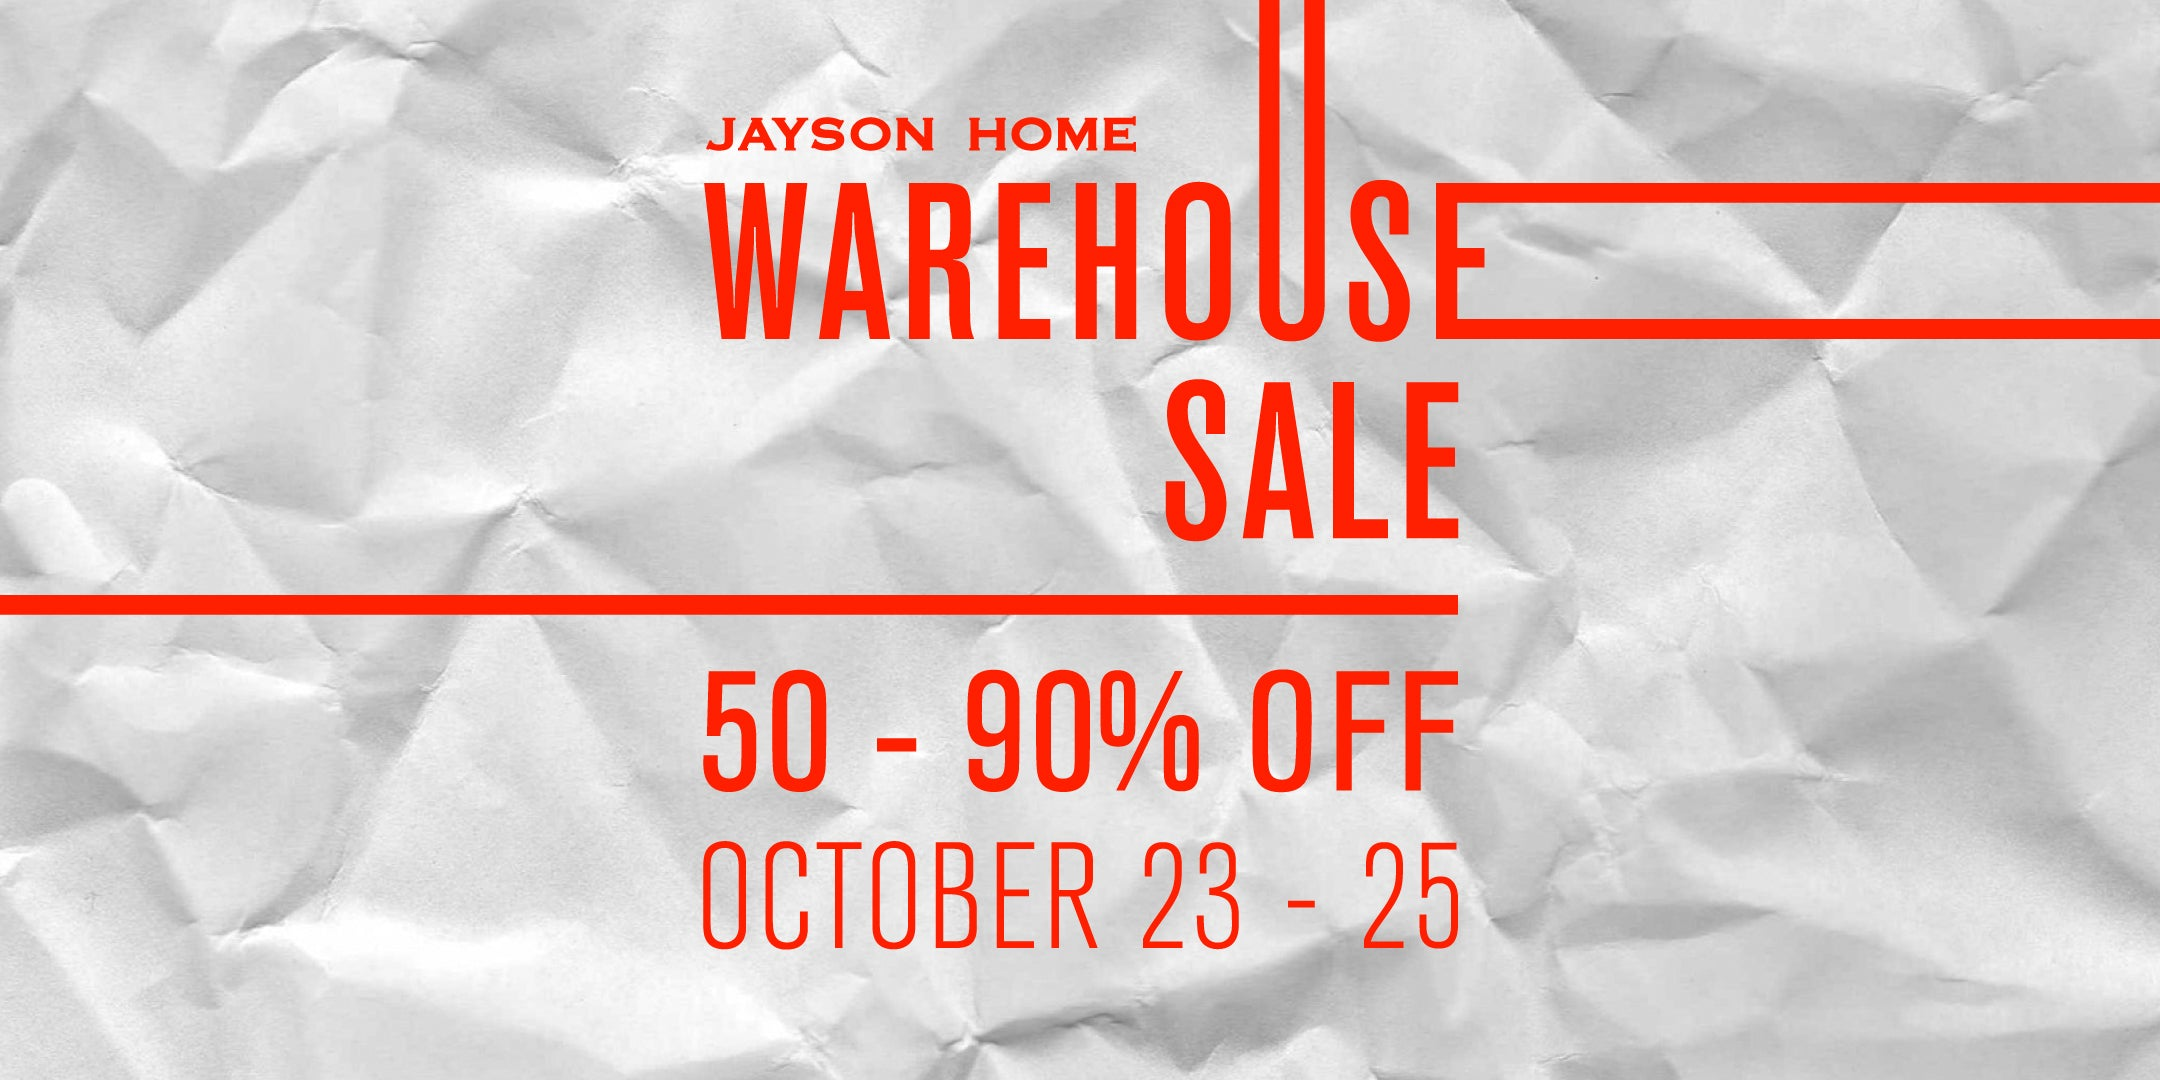 Jayson Home Warehouse Sale: October 23rd - 25th